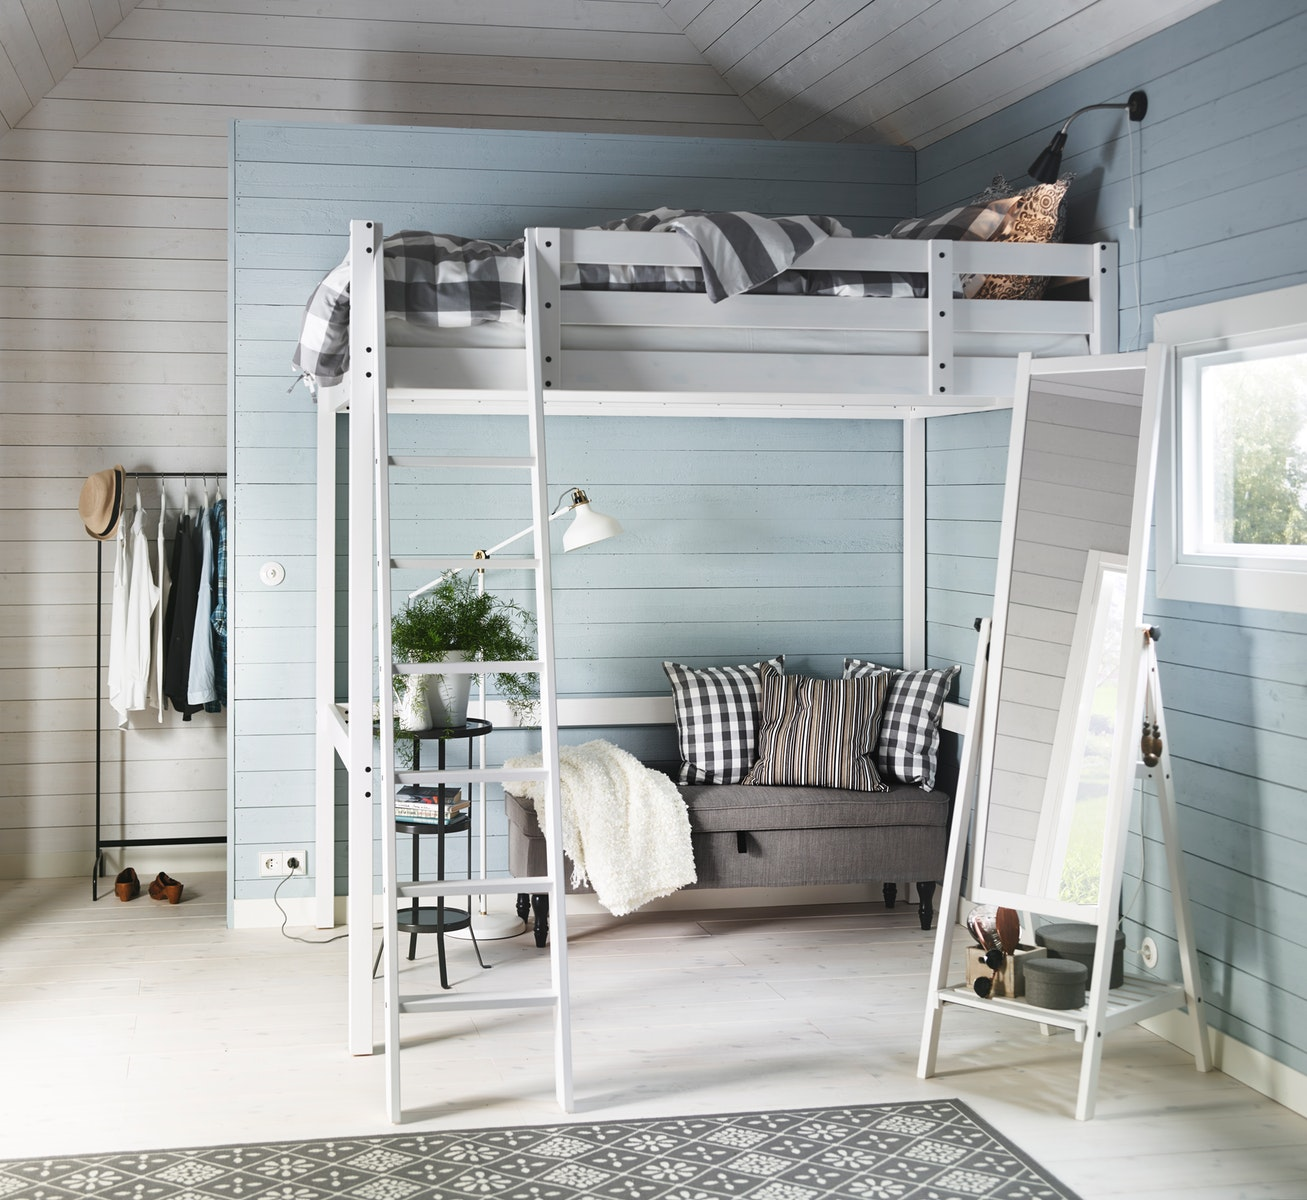 Bunk bed as a solution for small room